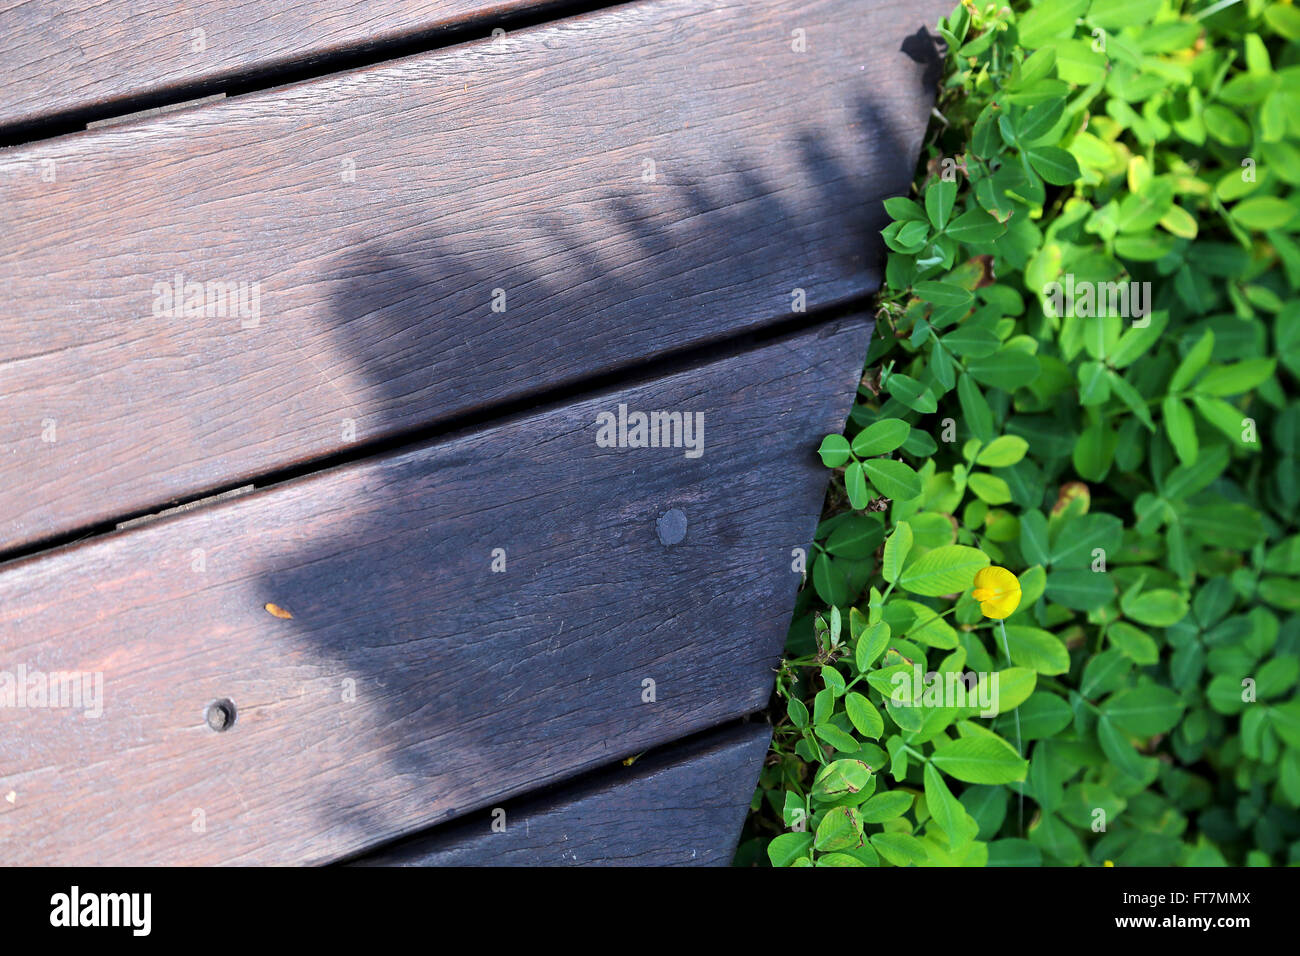 composition in photography - Stock Image